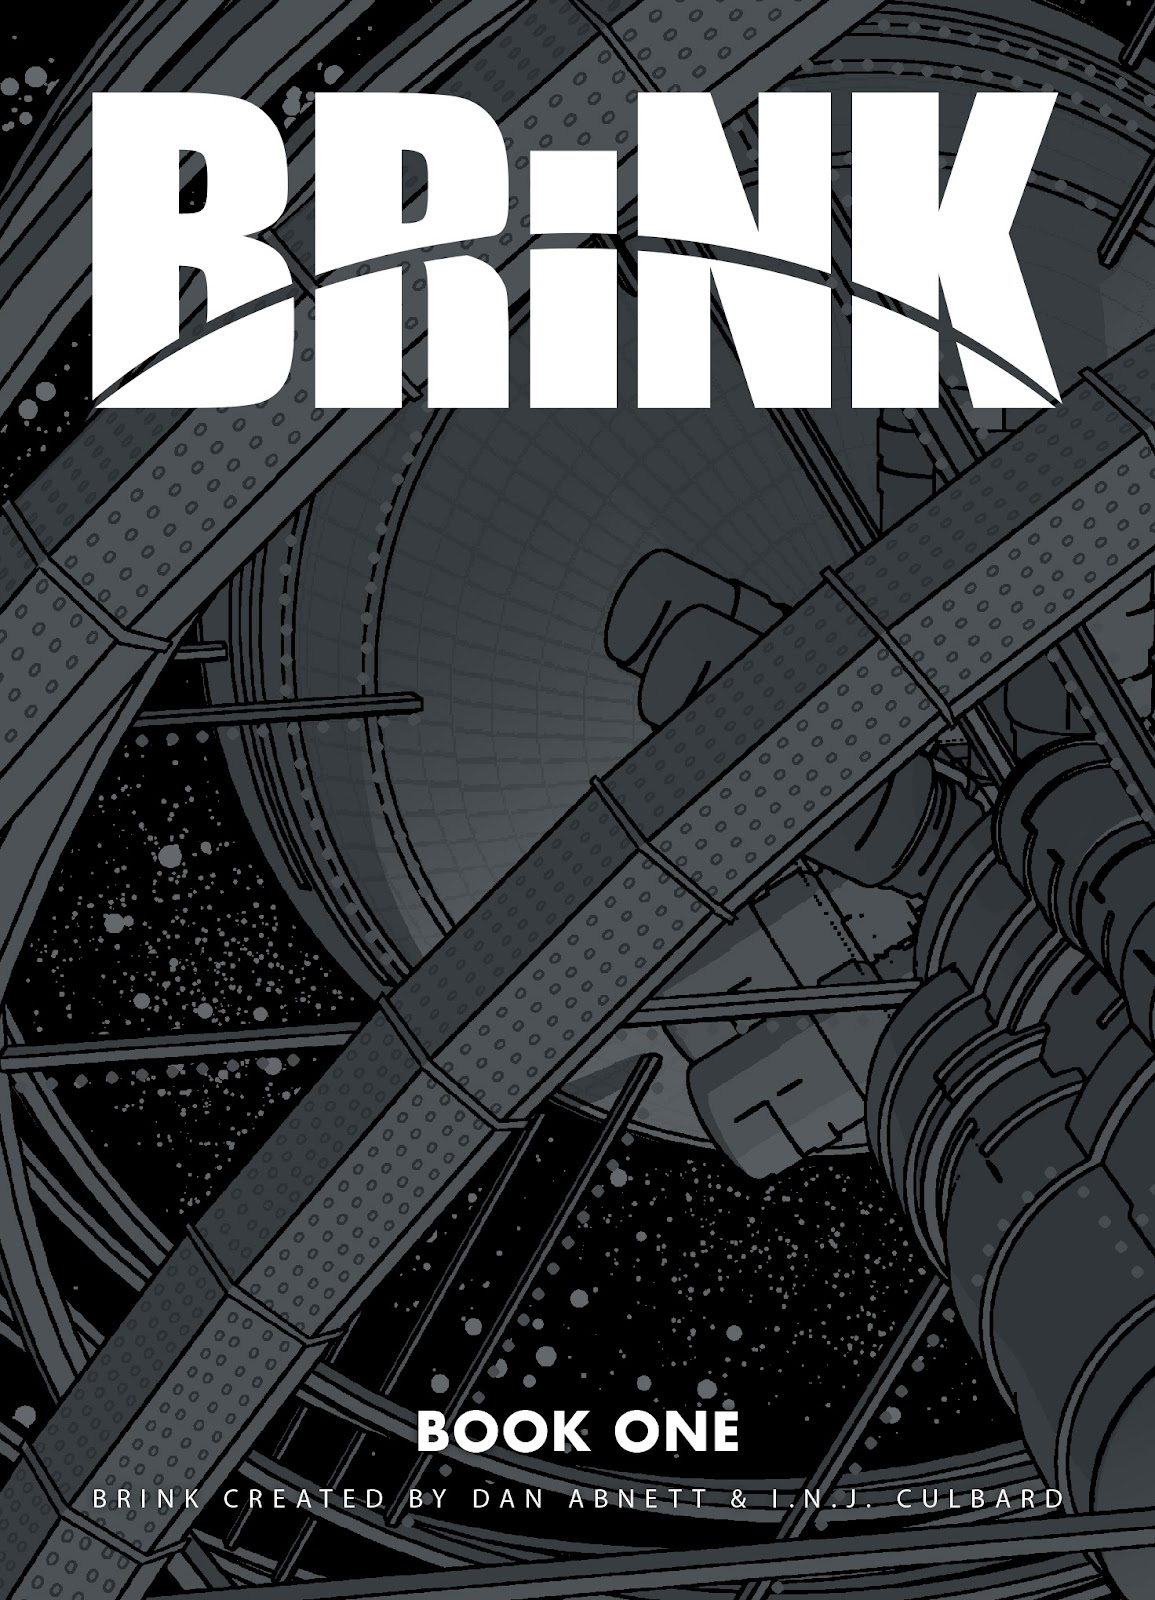 Read online Brink comic -  Issue # TPB 1 - 3